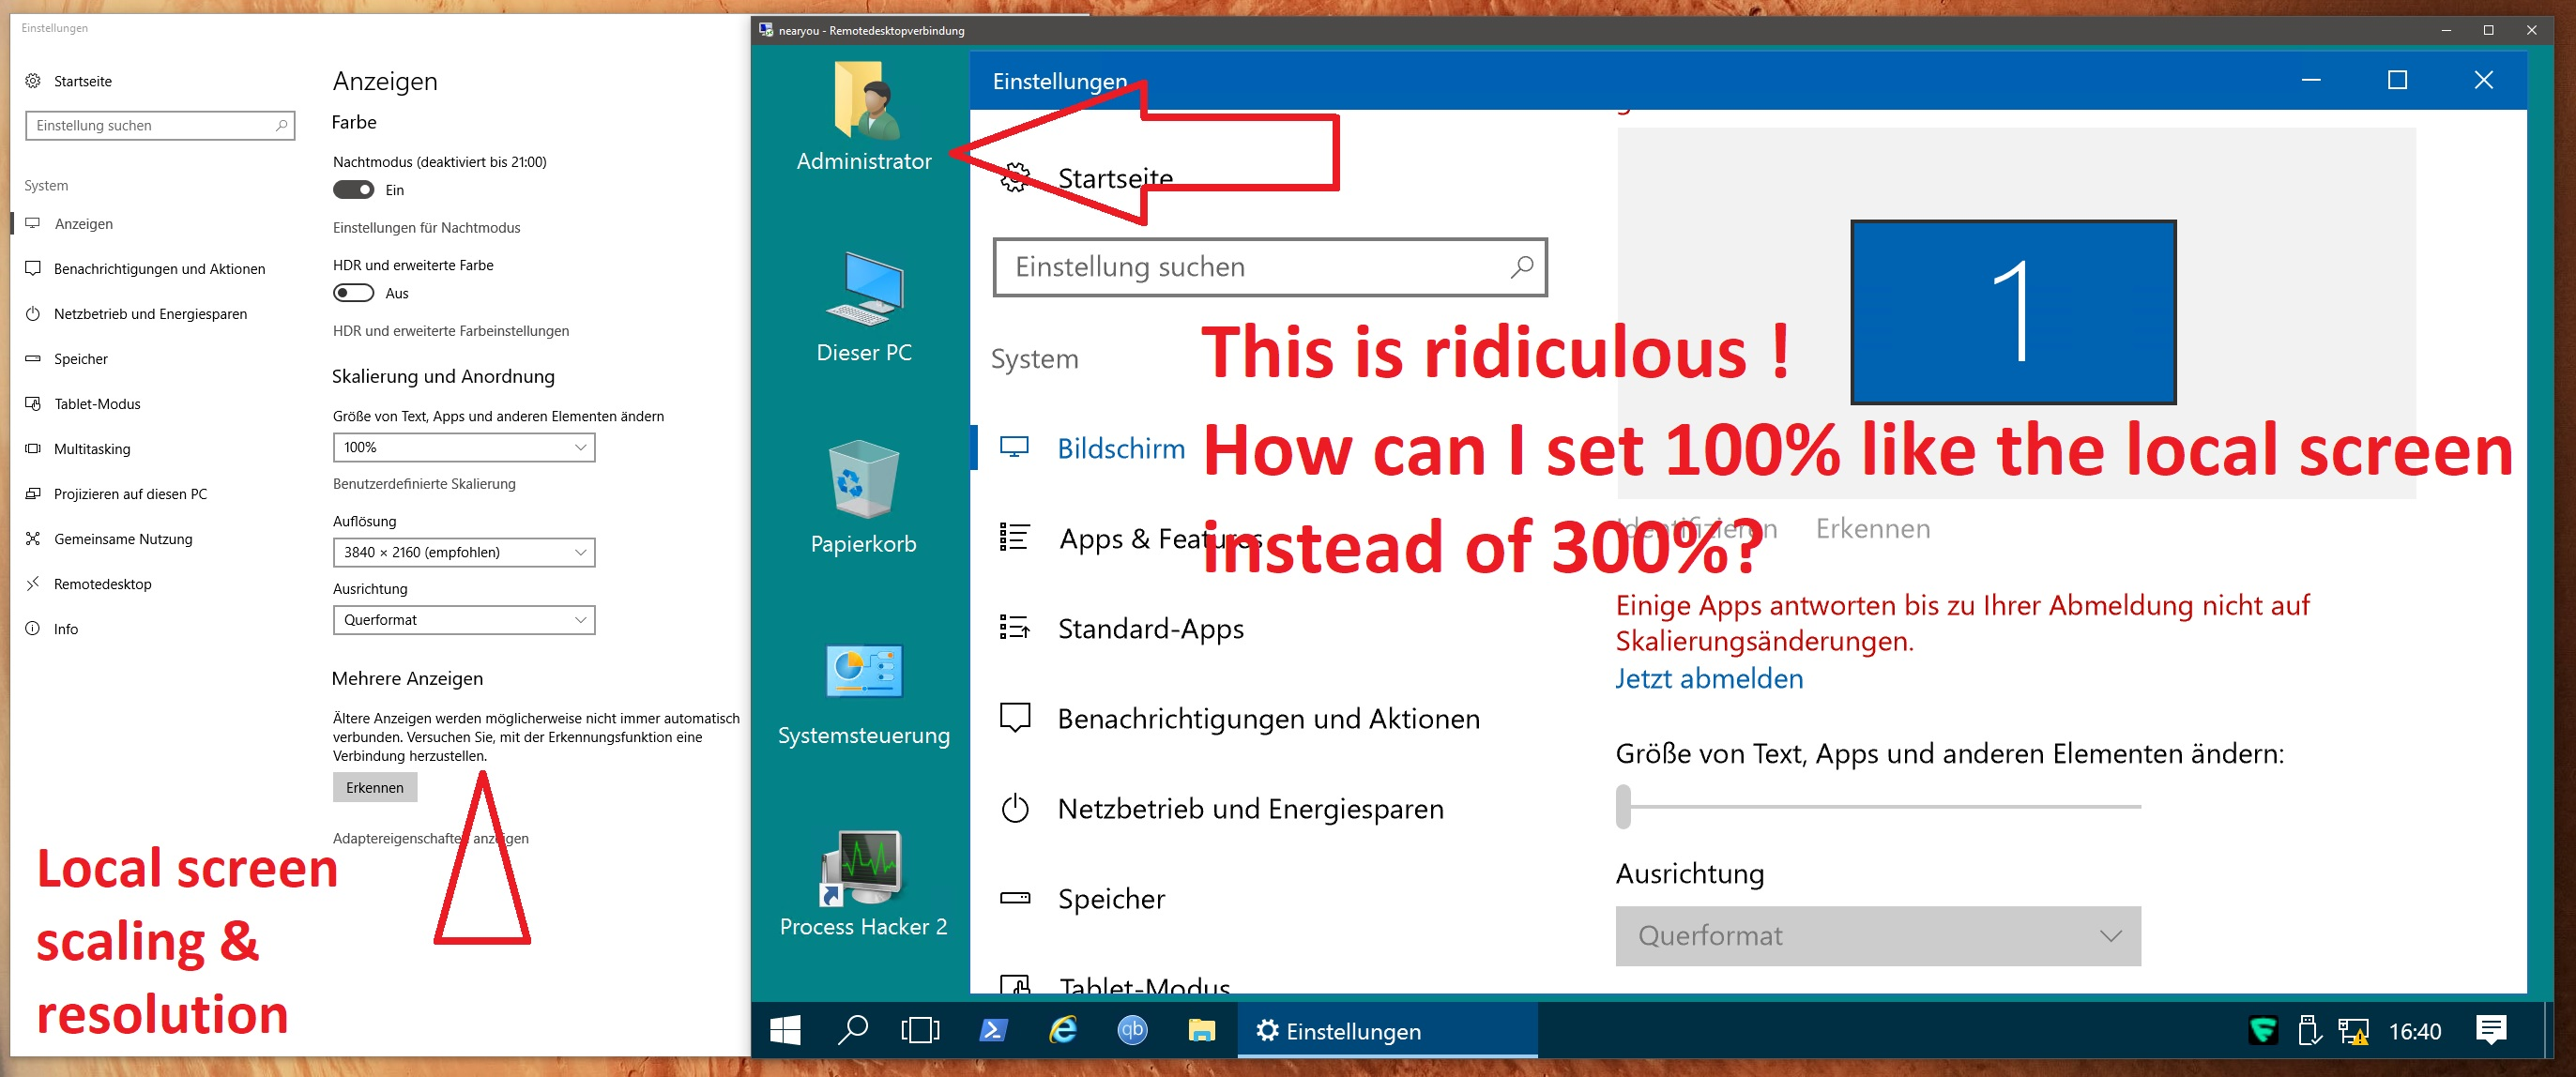 SOLVED! - Ridiculousy large scaling in Server 2016 RDP - how